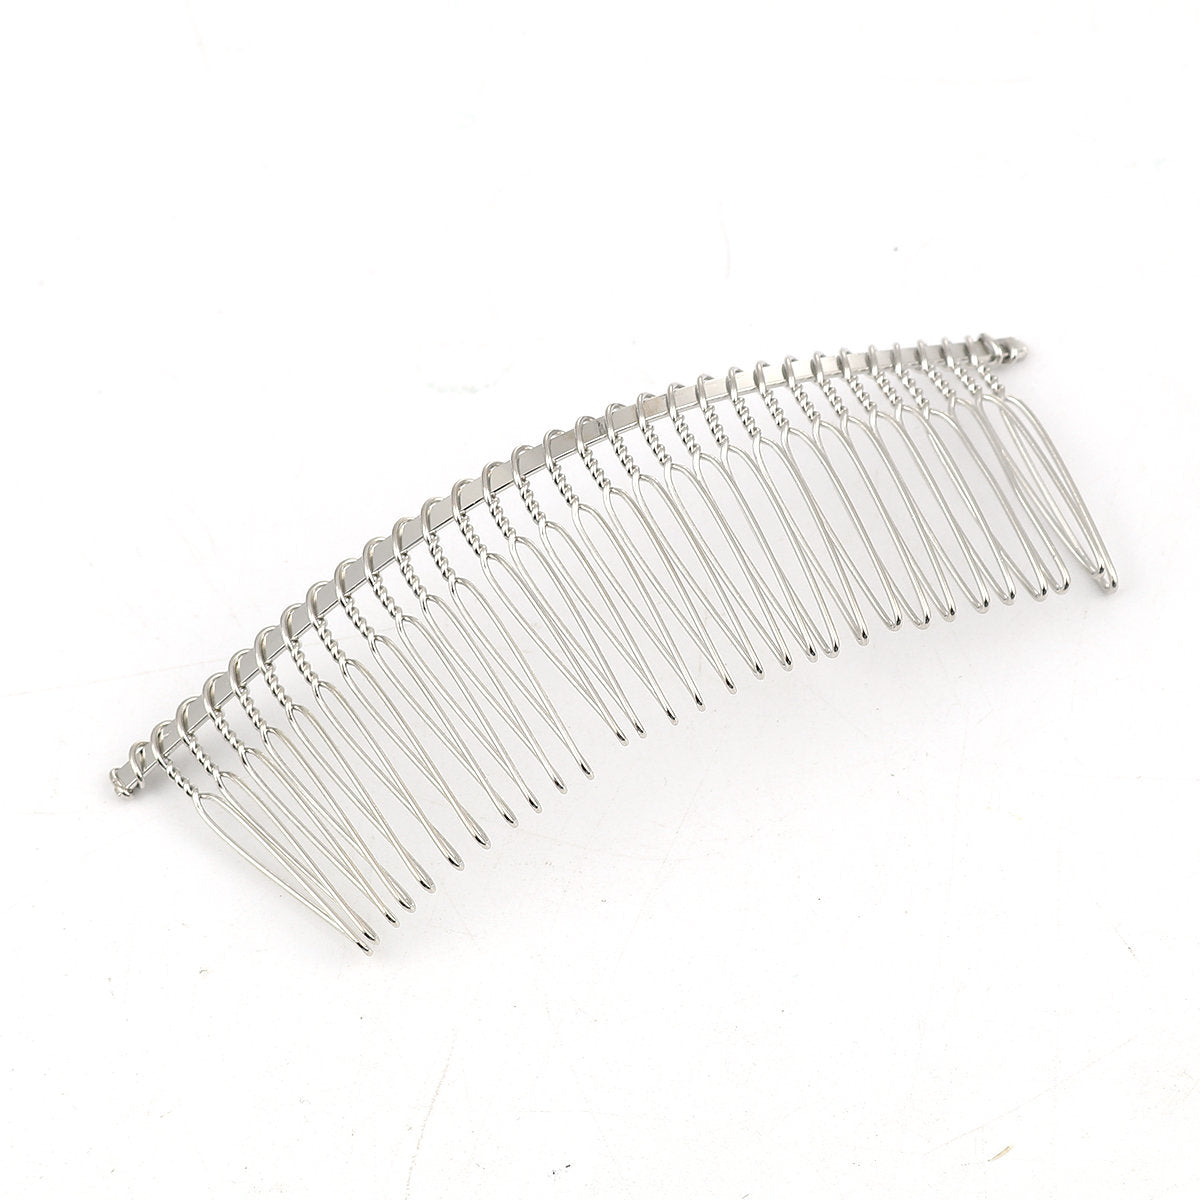 "5 Wide Silver Hair Combs - Lead and Nickel Free - Wedding Bridal Comb -  11.5cm  x 4cm  (4 1/2"" x 1 5/8"")"